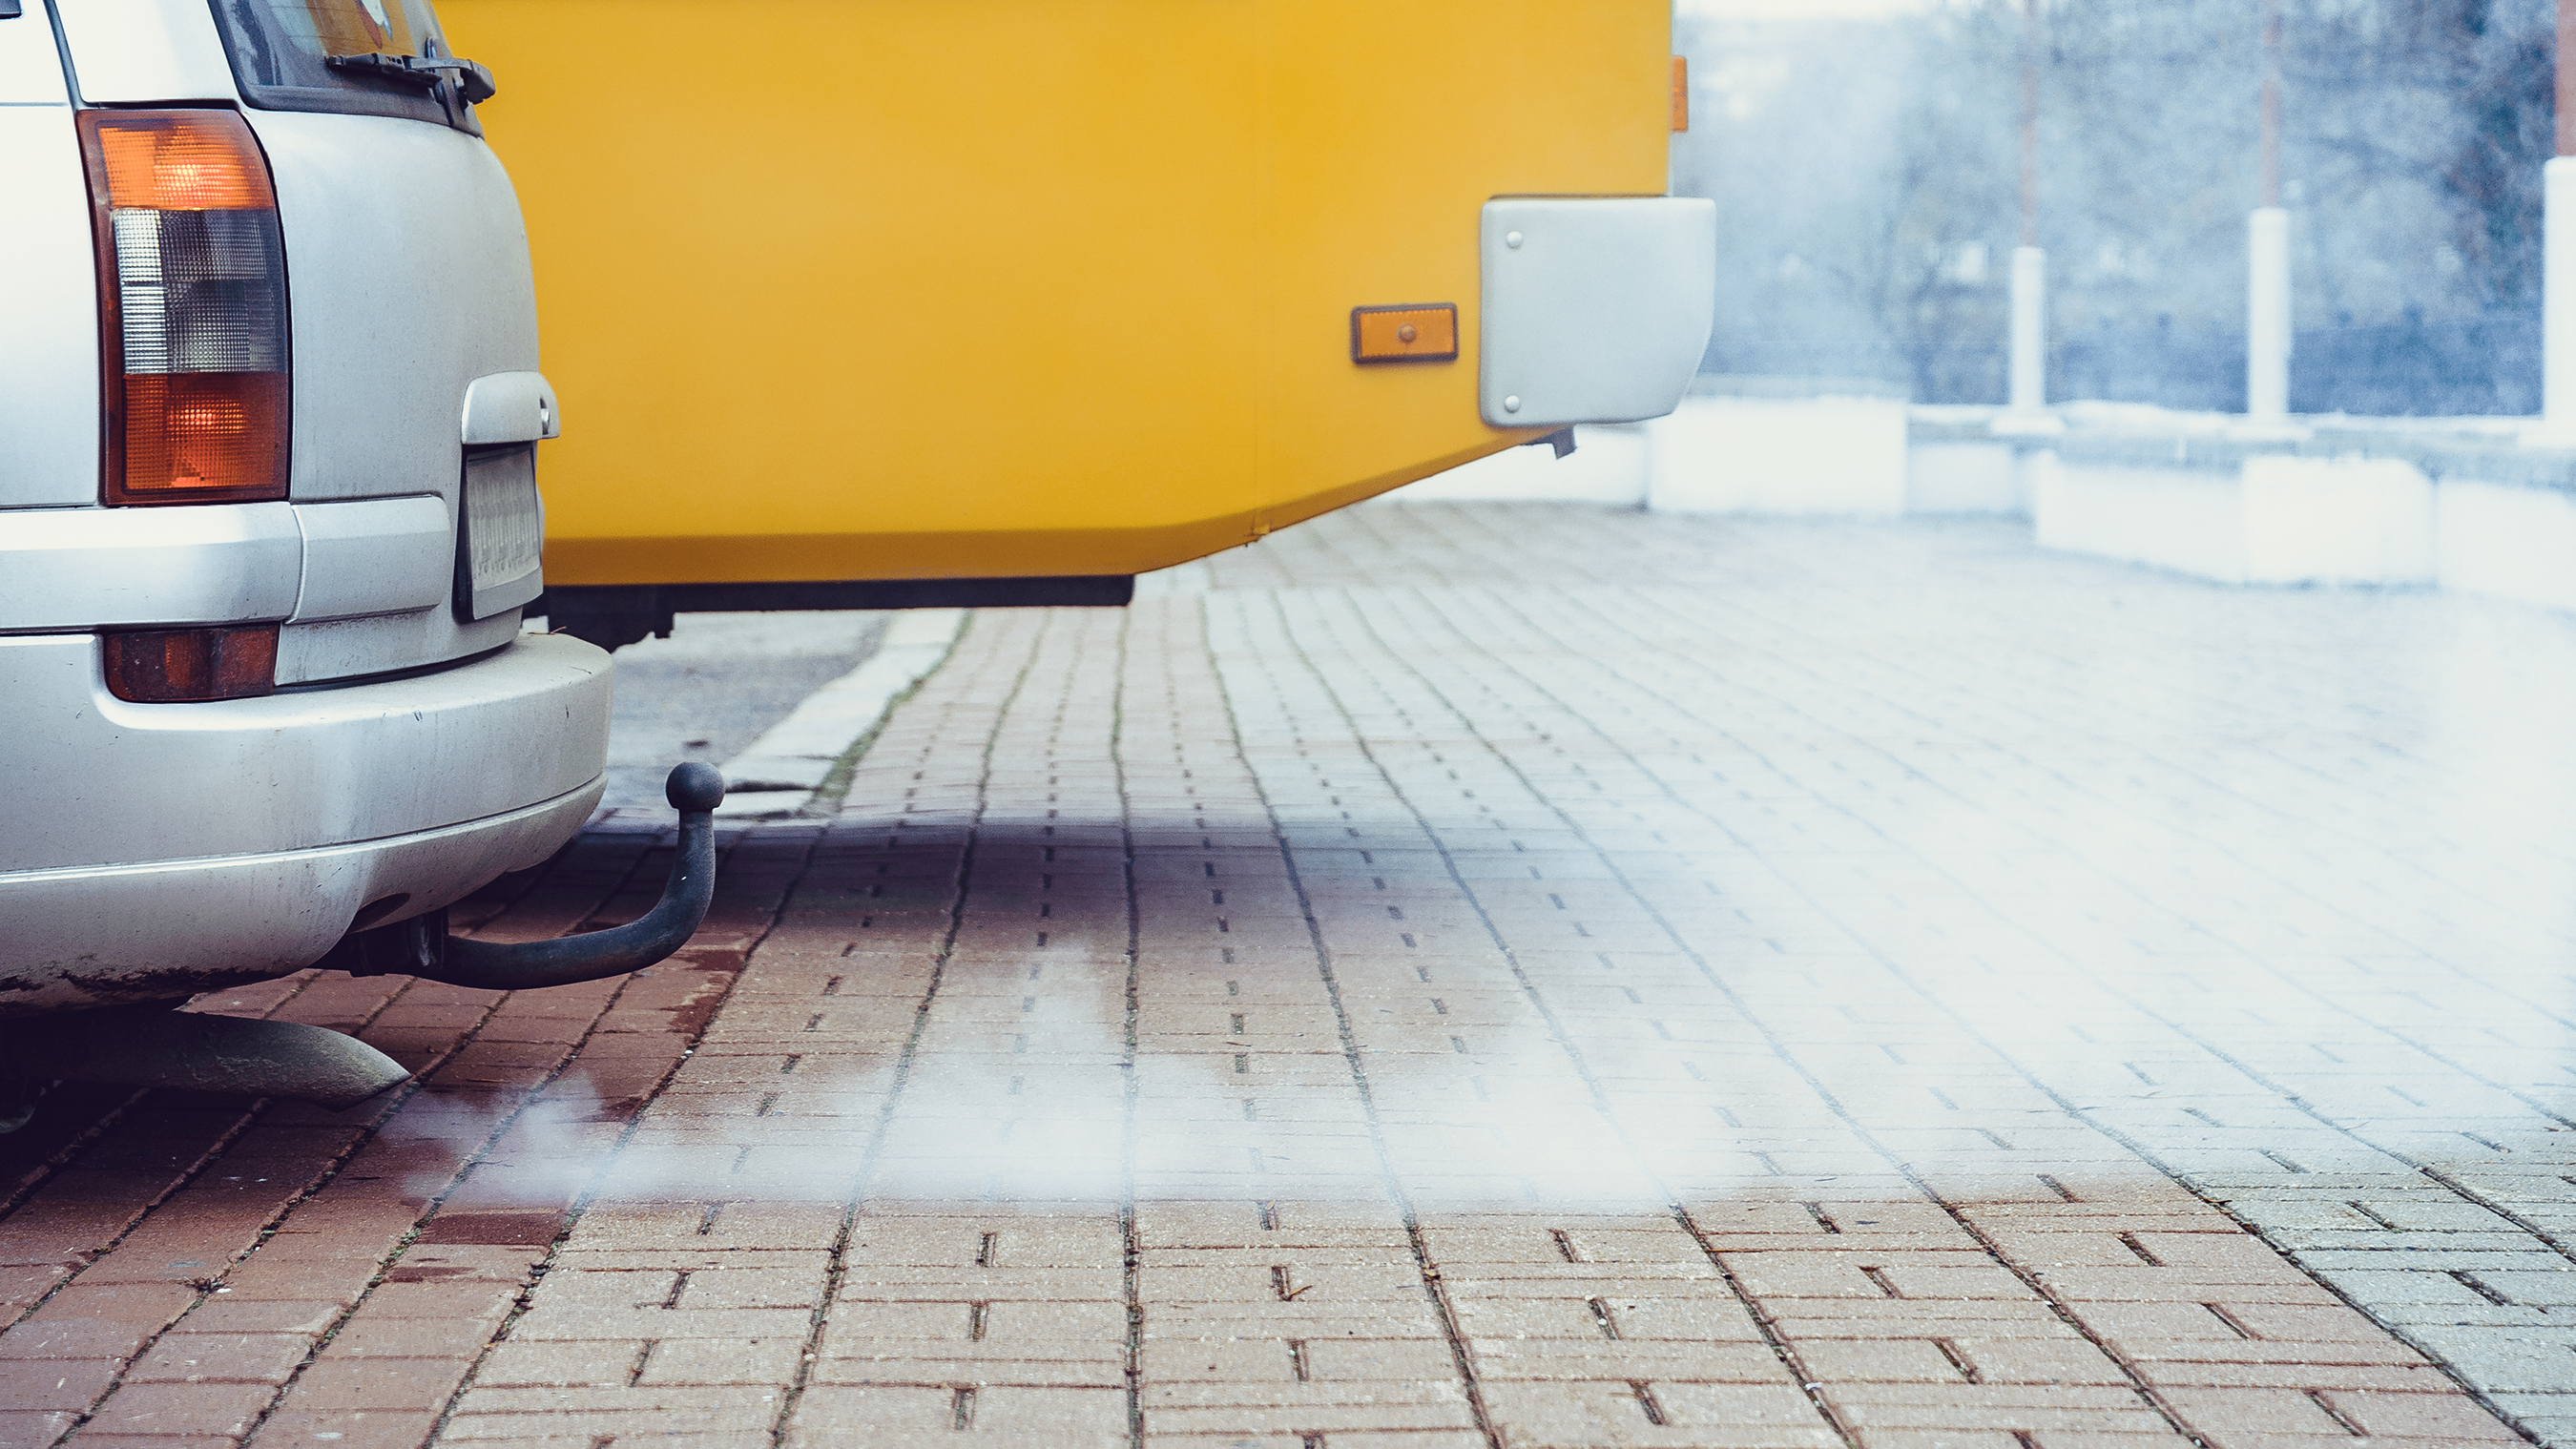 Polluting carbon emissions from the tailpipe of a non-electric vehicle